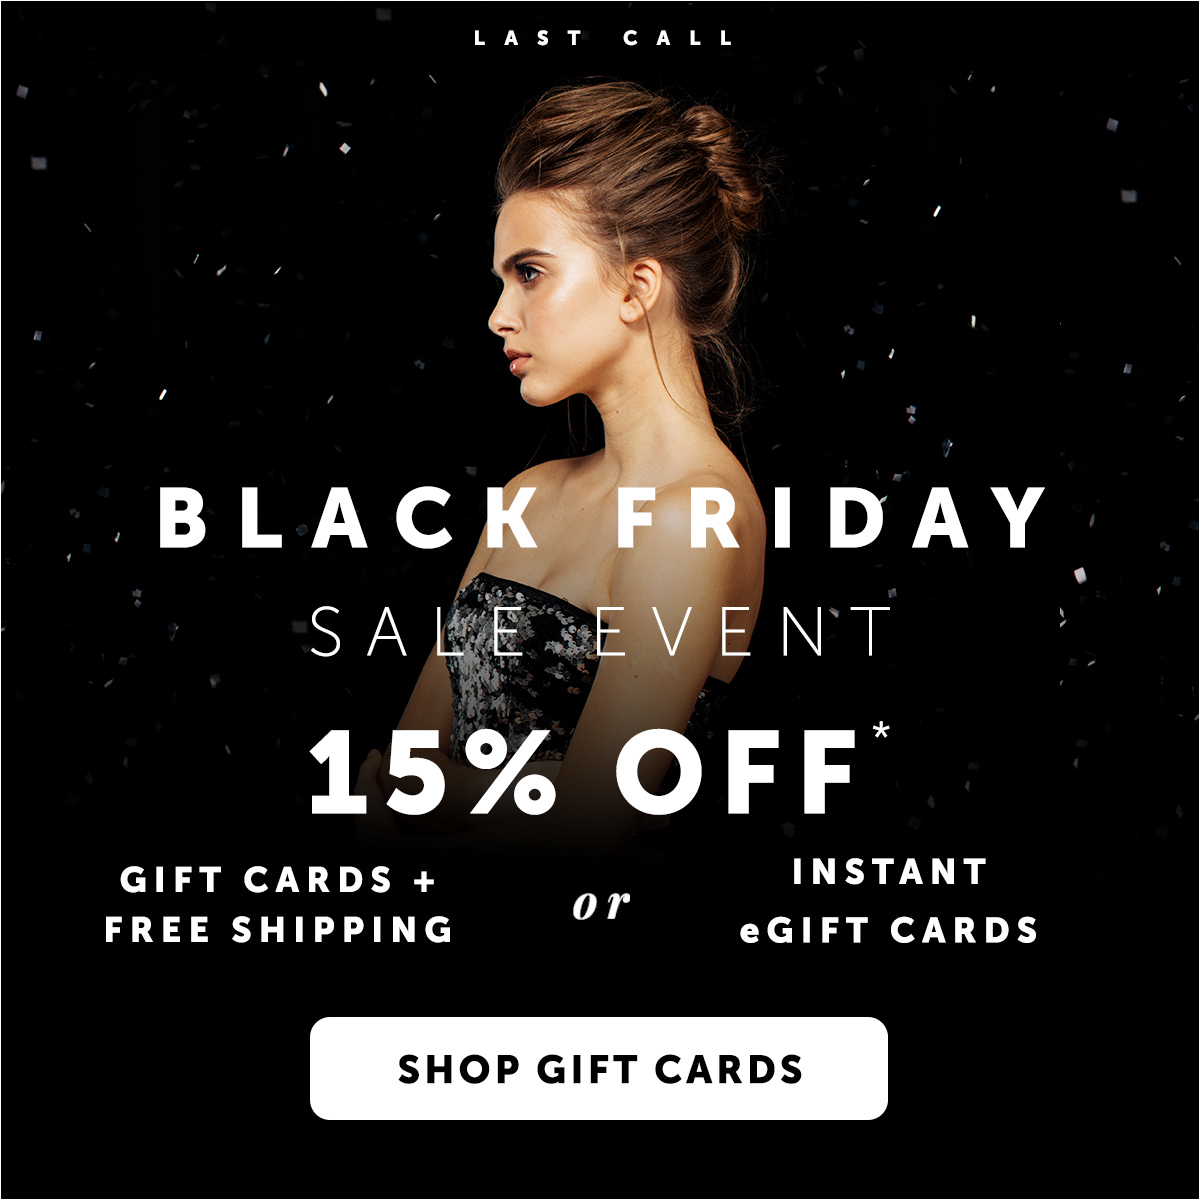 Take 15% OFF Your Entire Order + FREE Shipping